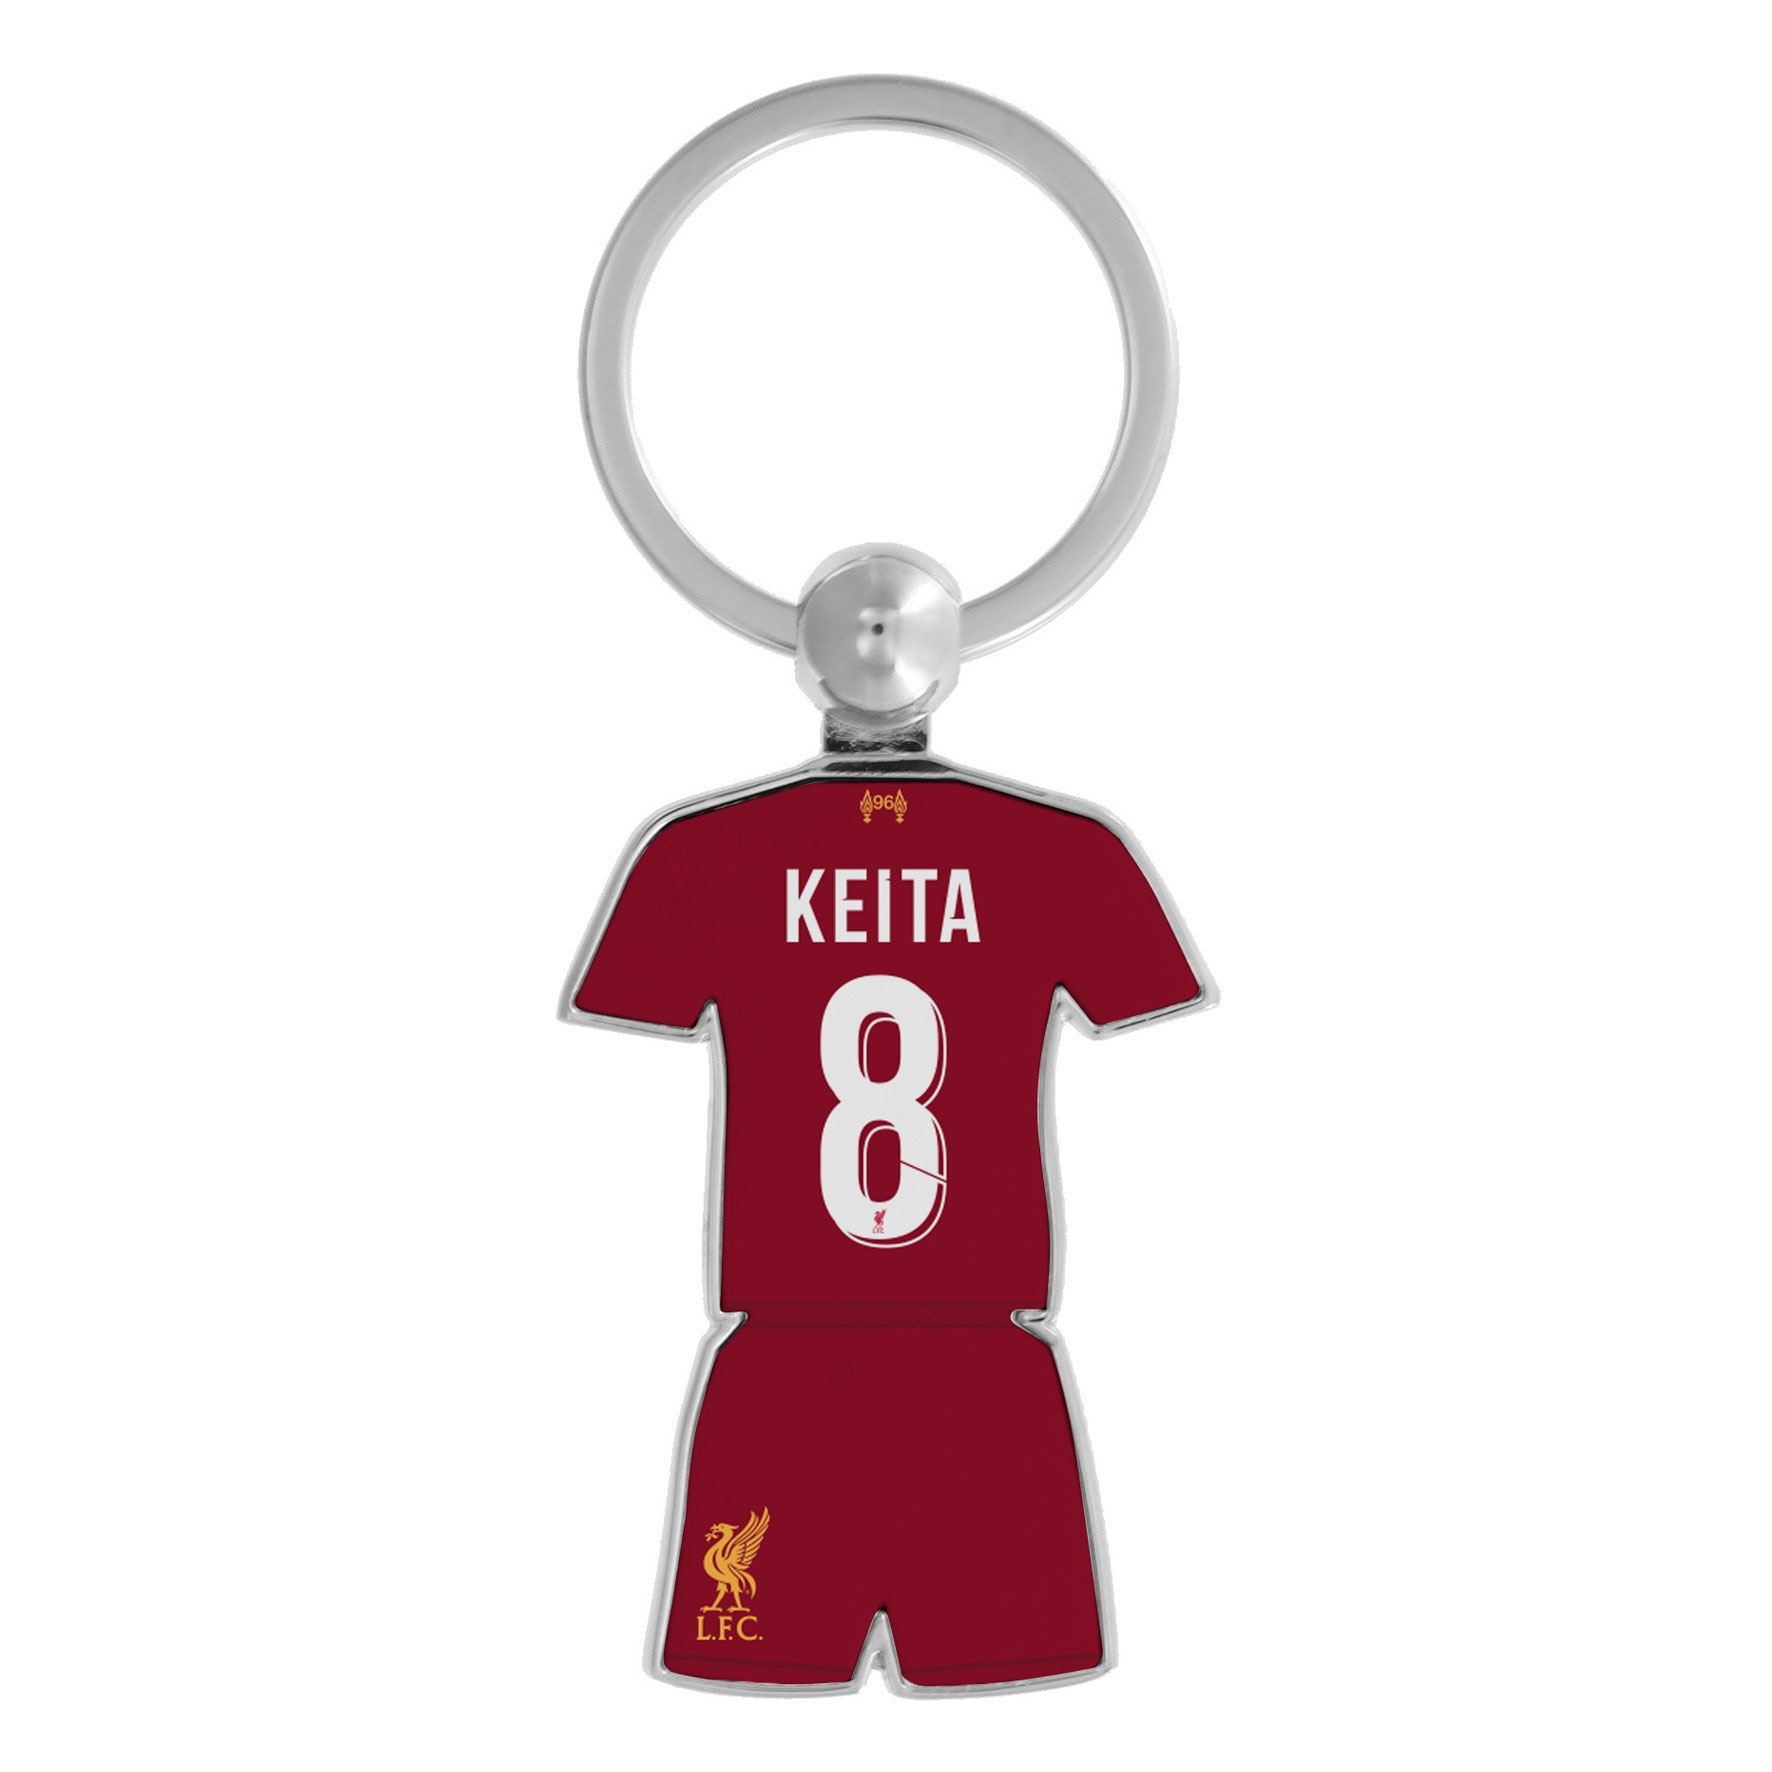 best service 3ce5a 98889 Details about Liverpool FC Red Soccer Keita Kit Keyring 19/20 LFC Official